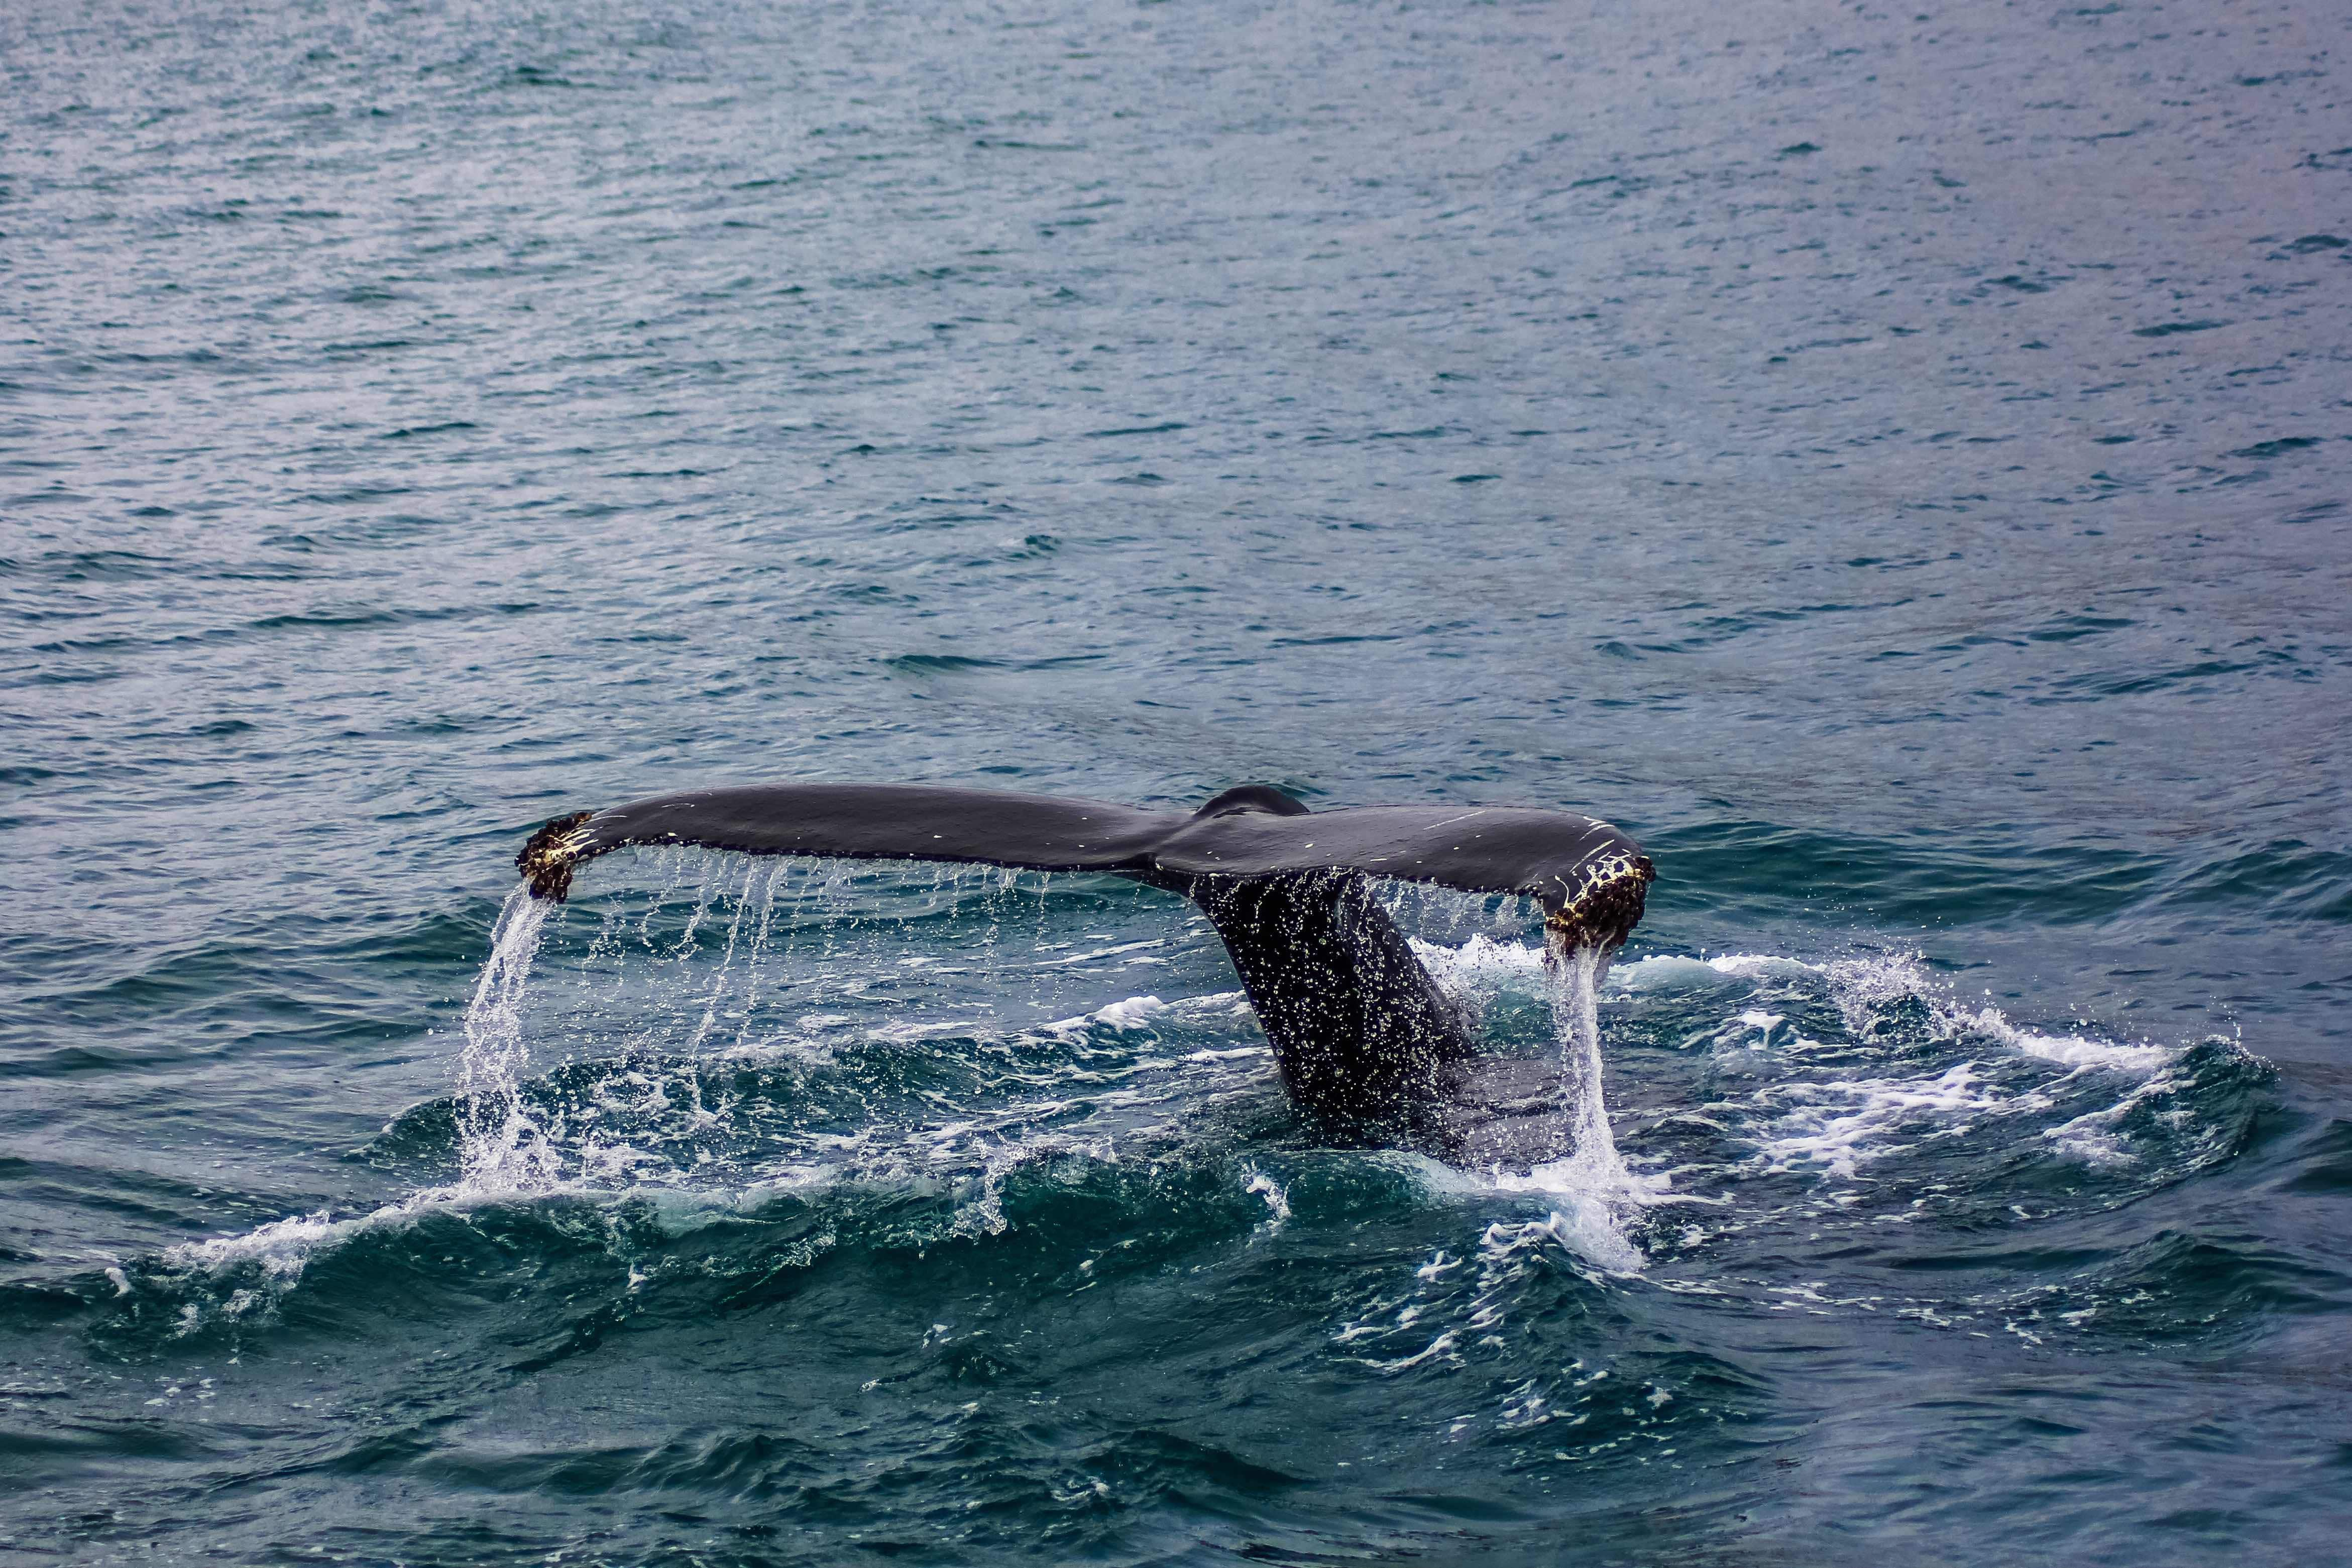 Whale watching by boat in Kaikoura